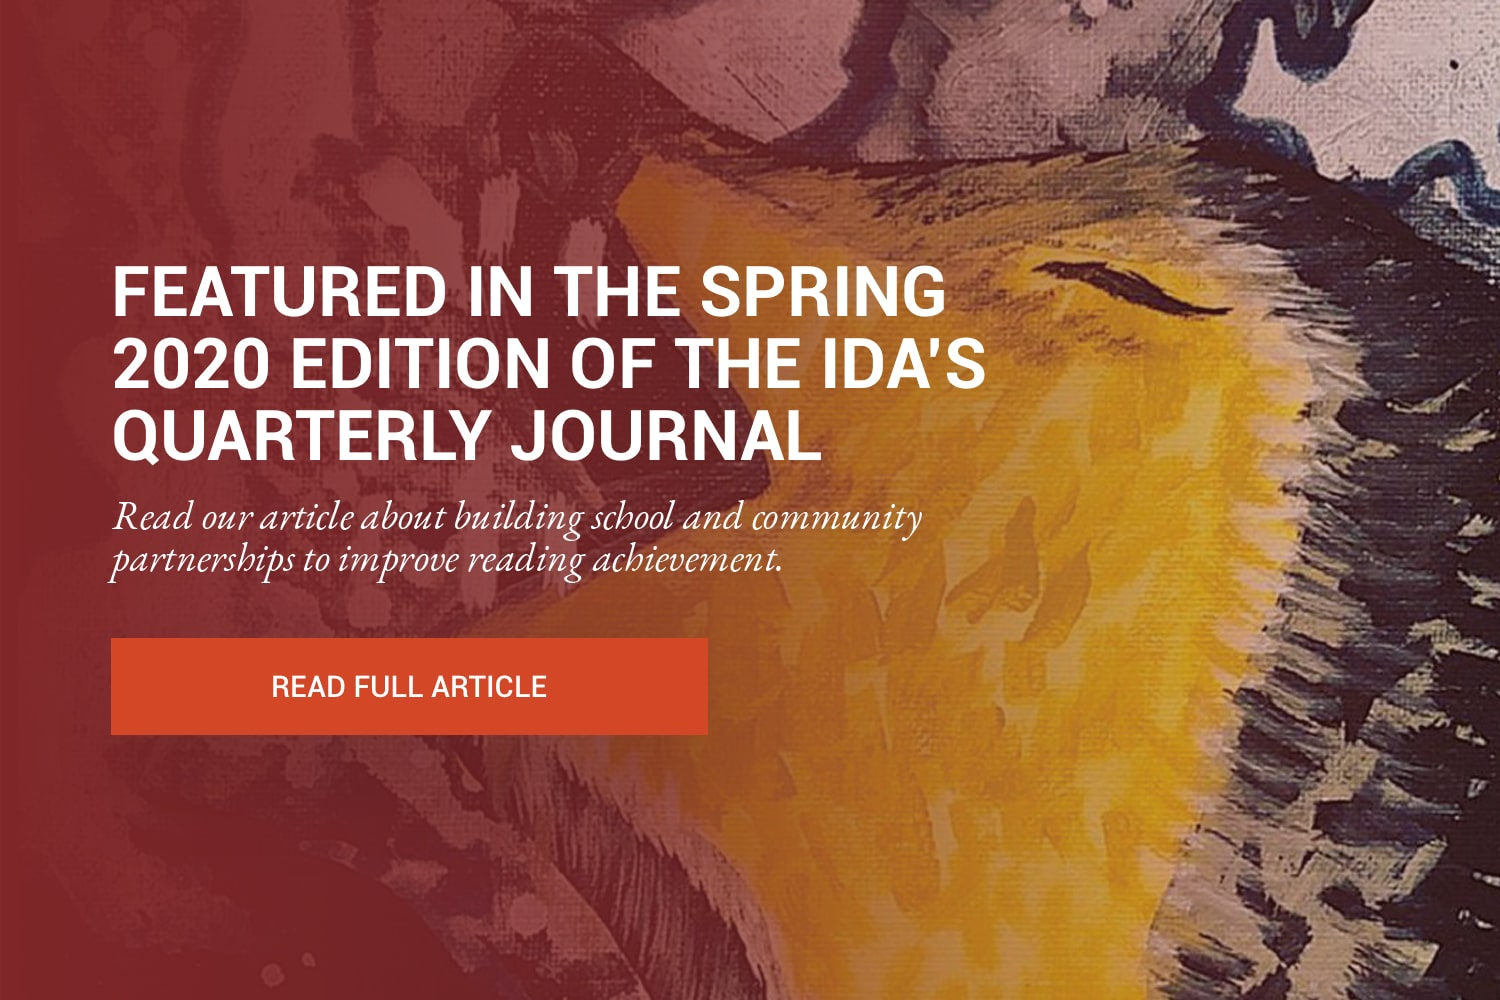 IDA Quarterly Journal Feature